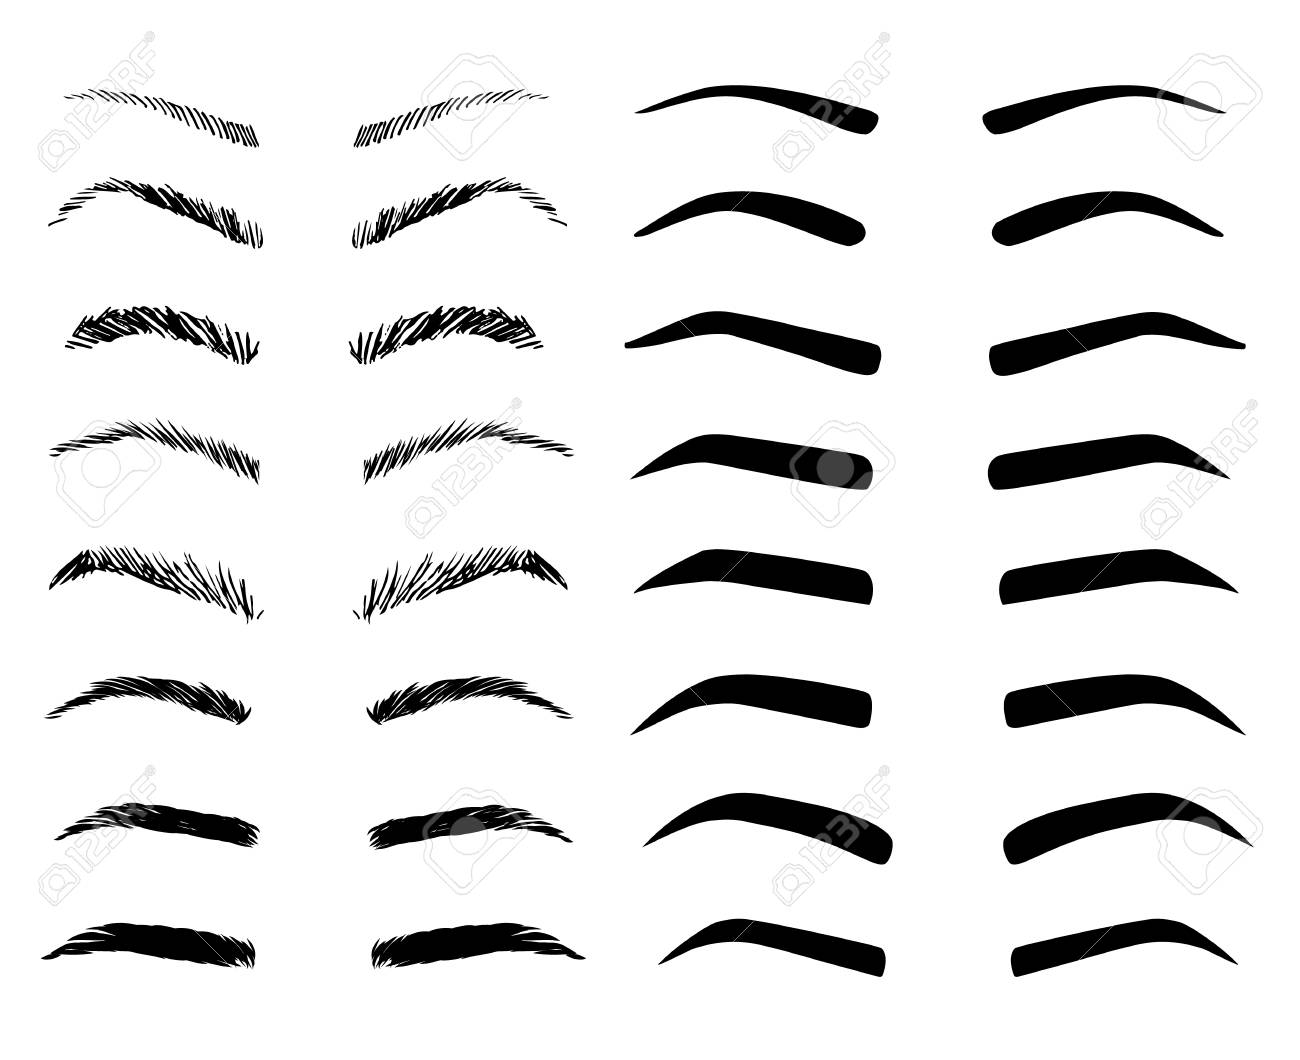 Eyebrow shapes illustration set. Various types of eyebrows. - 123343723